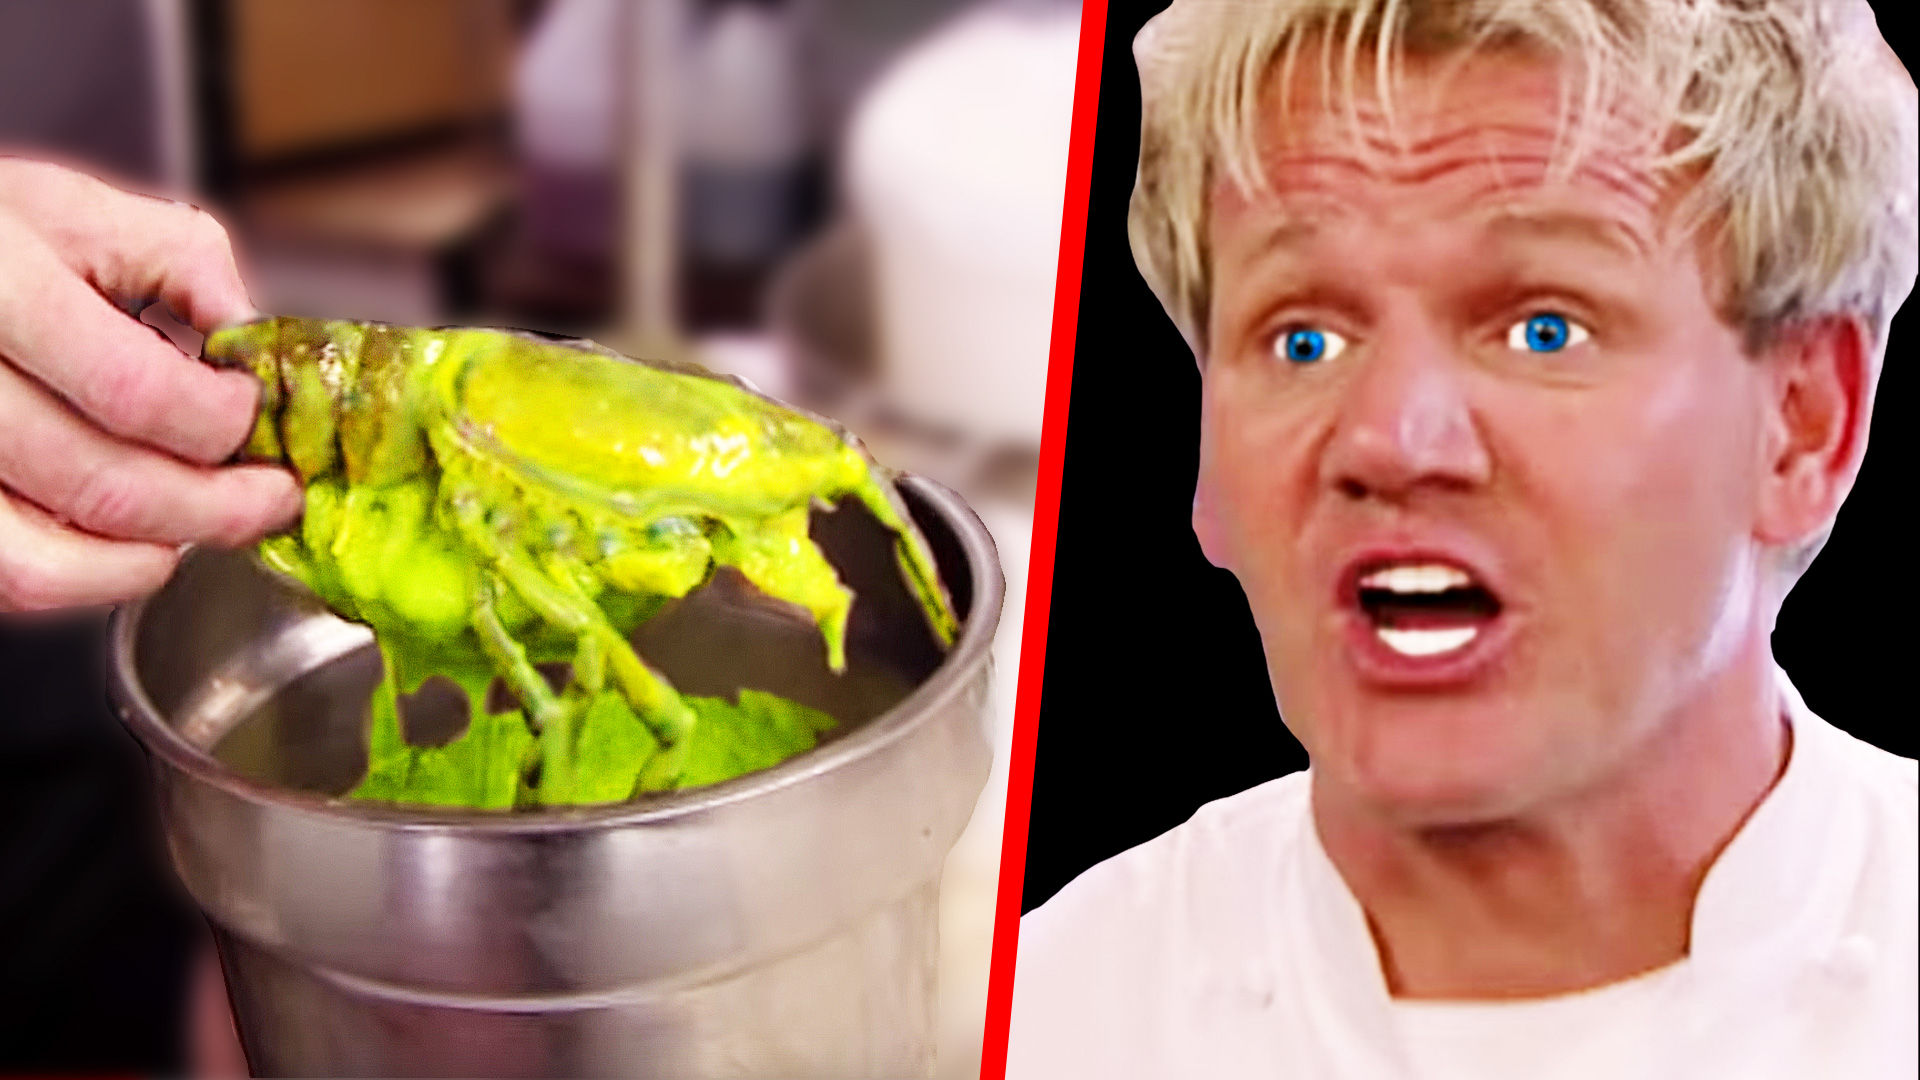 Gordon Ramsay Shuts Down the Kitchen - Kitchen Nightmares